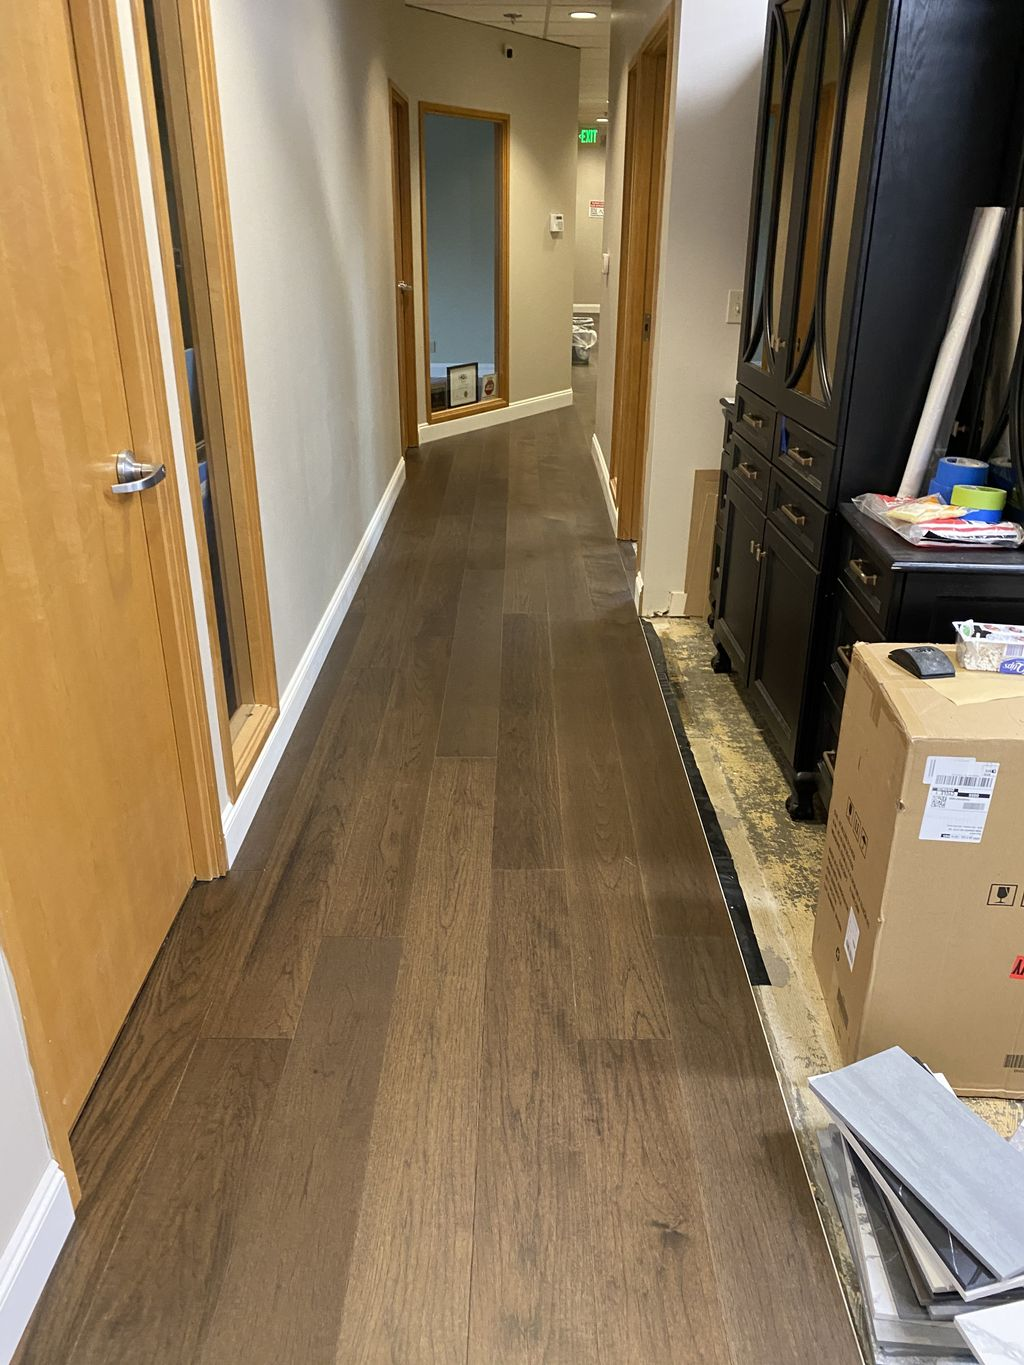 Luxury Vinyl Flooring with real engendered floors on top cover